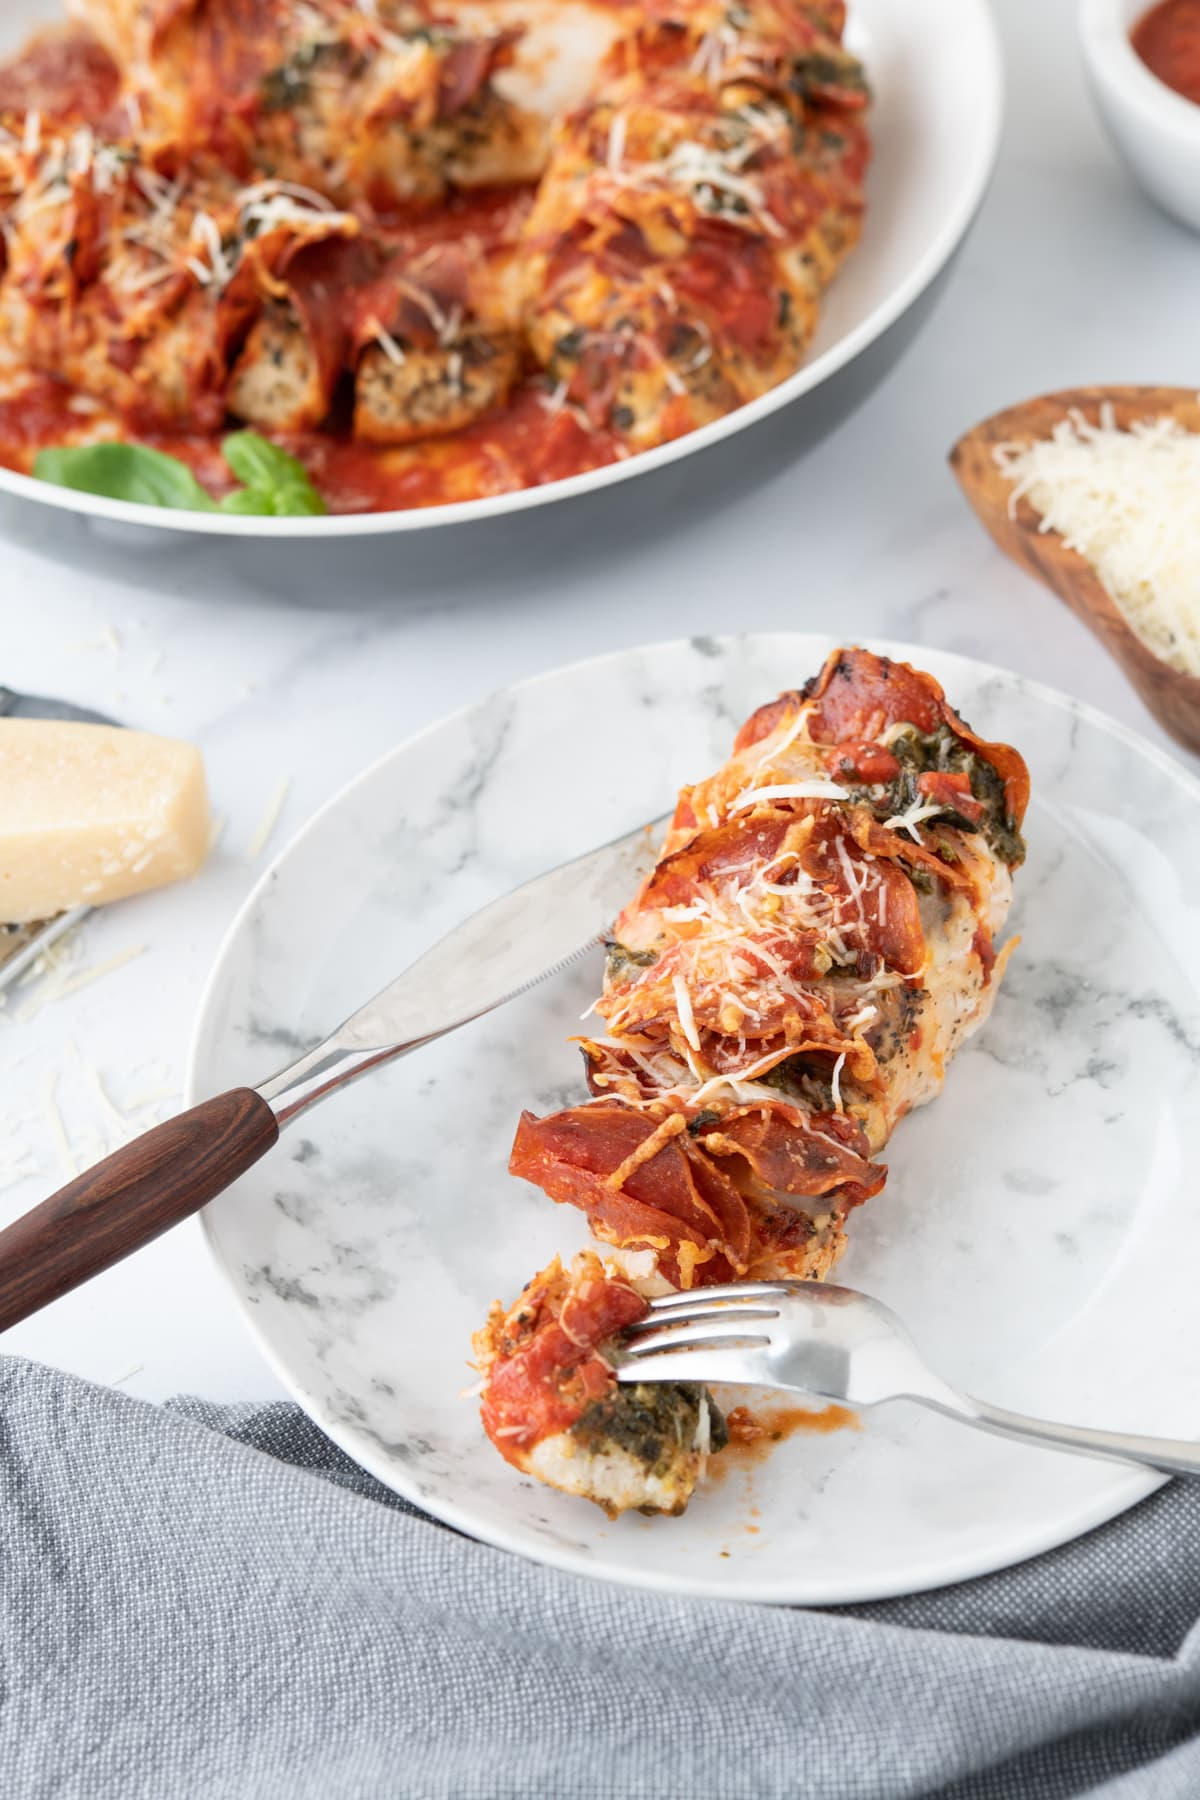 Chicken breast with pepperoni, pizza sauce and cheese, garnished with cheese and pesto, on a marble plate with a fork and knife